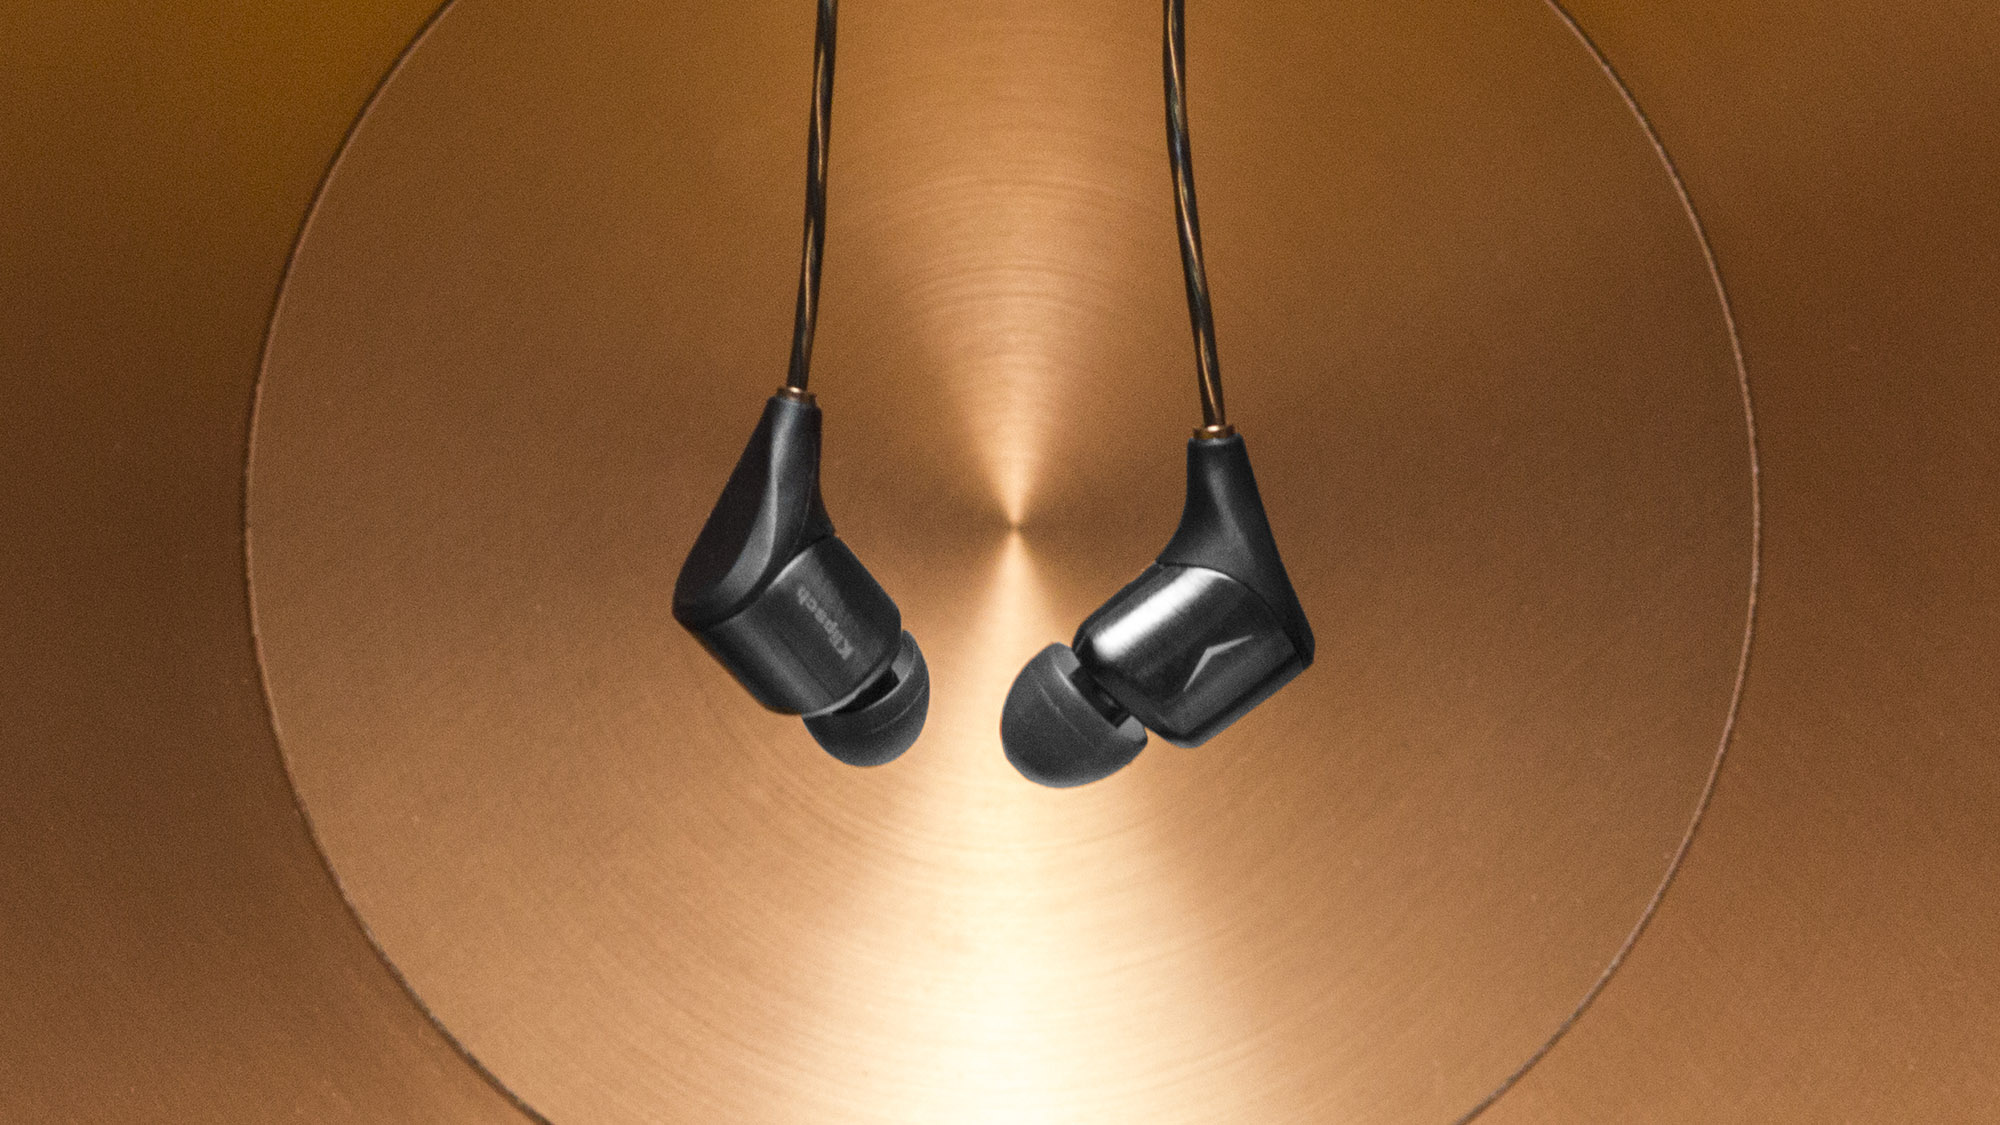 Klipsch  Xr8i  Headphones 2